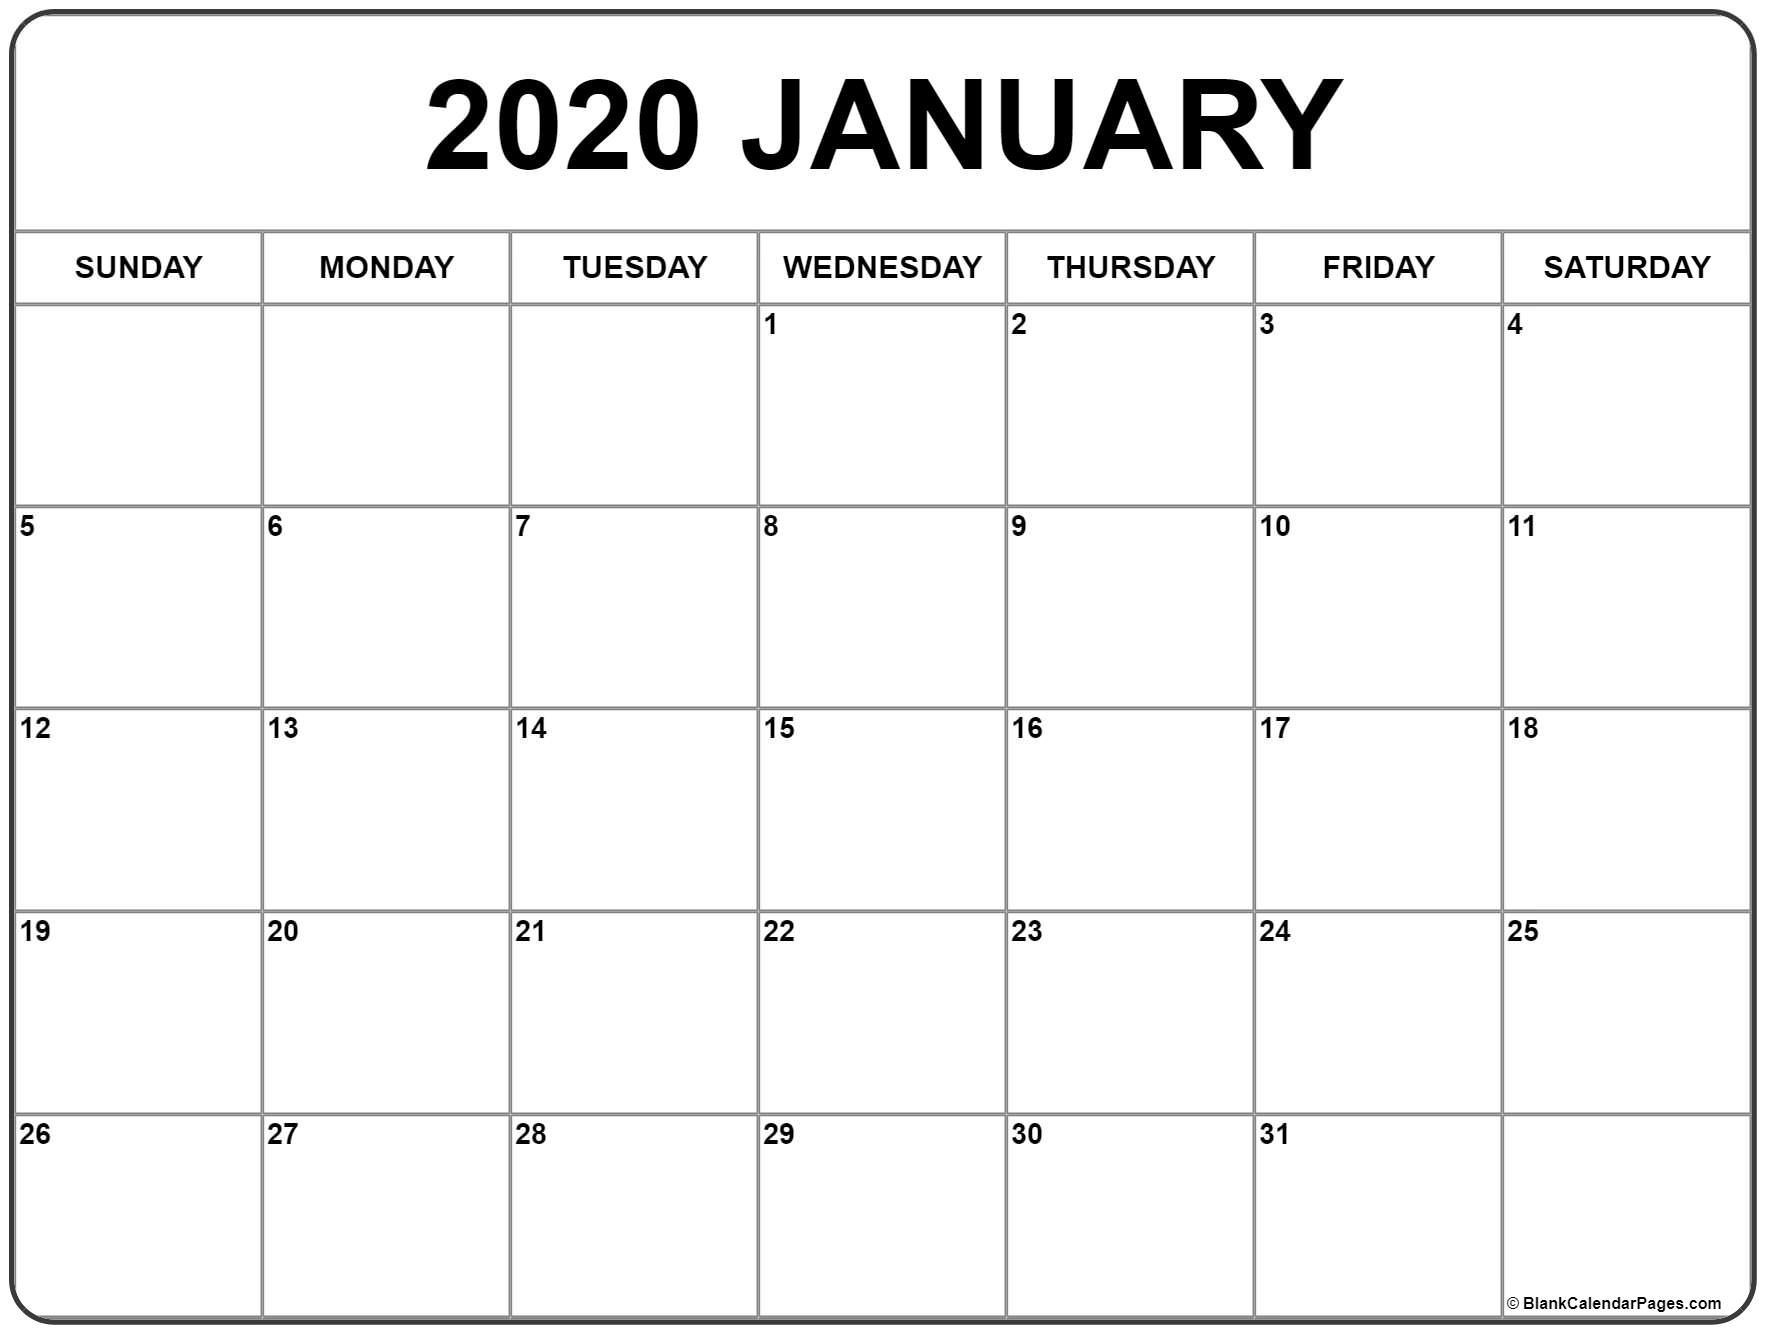 January 2020 Calendar | Free Printable Monthly Calendars-January 2020 Calendar Public Holidays